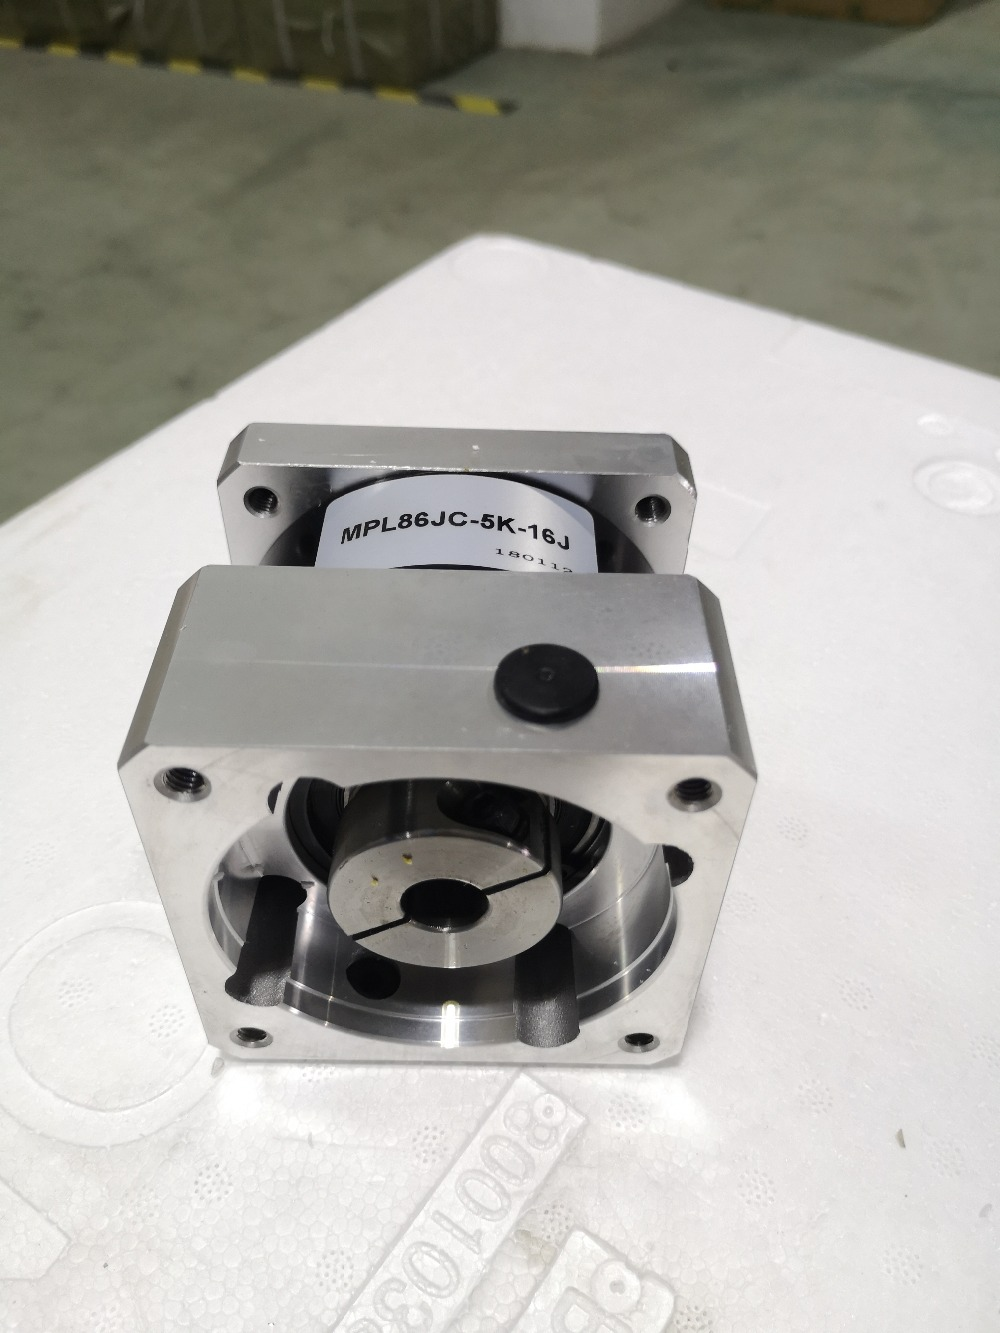 10 1 NEMA34 Precision type Planetary Reducer for nema 34 Stepper Motor Precesion Version Gearbox 50N